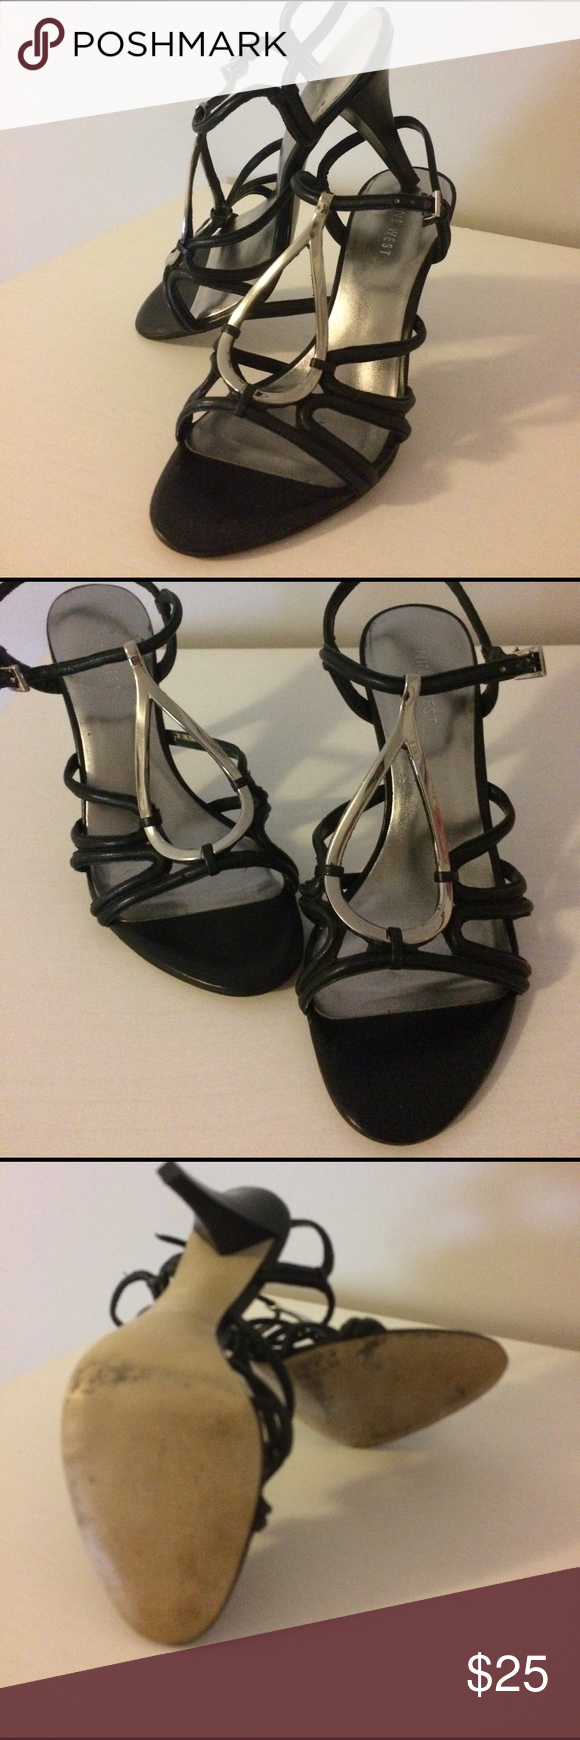 Nine West Heels Excellent condition, no scuffs or rips in front or heels. Has been worn a lot but lots of life left. Nine west black and silver ankle strap shoes with tear drop silver emblem on front. Heels are approximately 4 inches but they are comfortable. Size 7 1/2 Nine West Shoes Heels